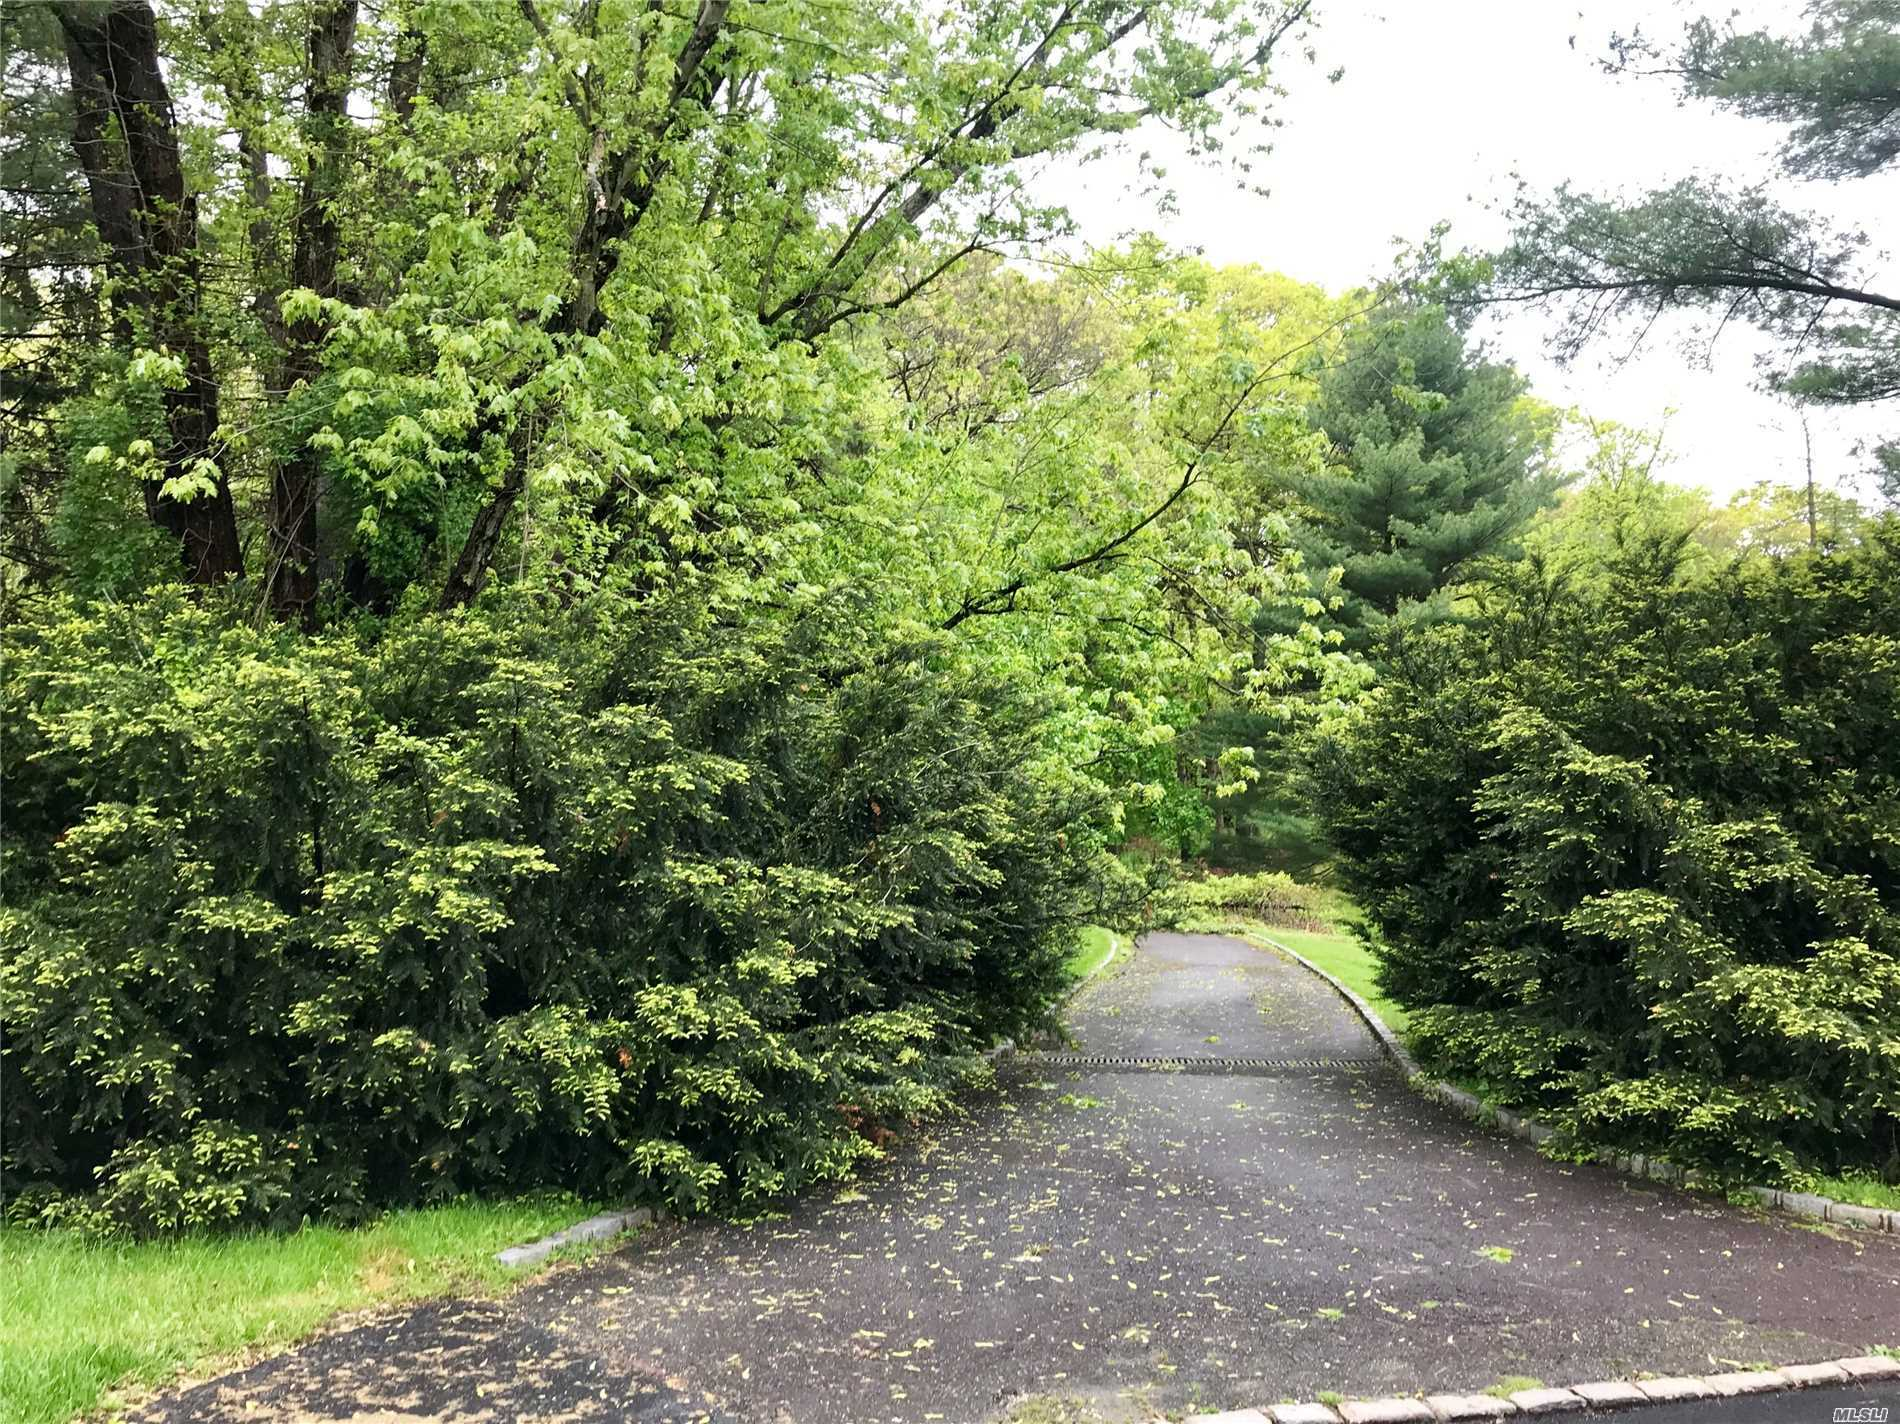 Custom Build Your Dream Home. Spectacular 2 Acre Buildable Lot Situated On One Of The Most Private And Quietest Cul De Sacs In Brookville. Located Within The Award Winning Jericho School District, Robert Seaman Elementary. Present All Offers.